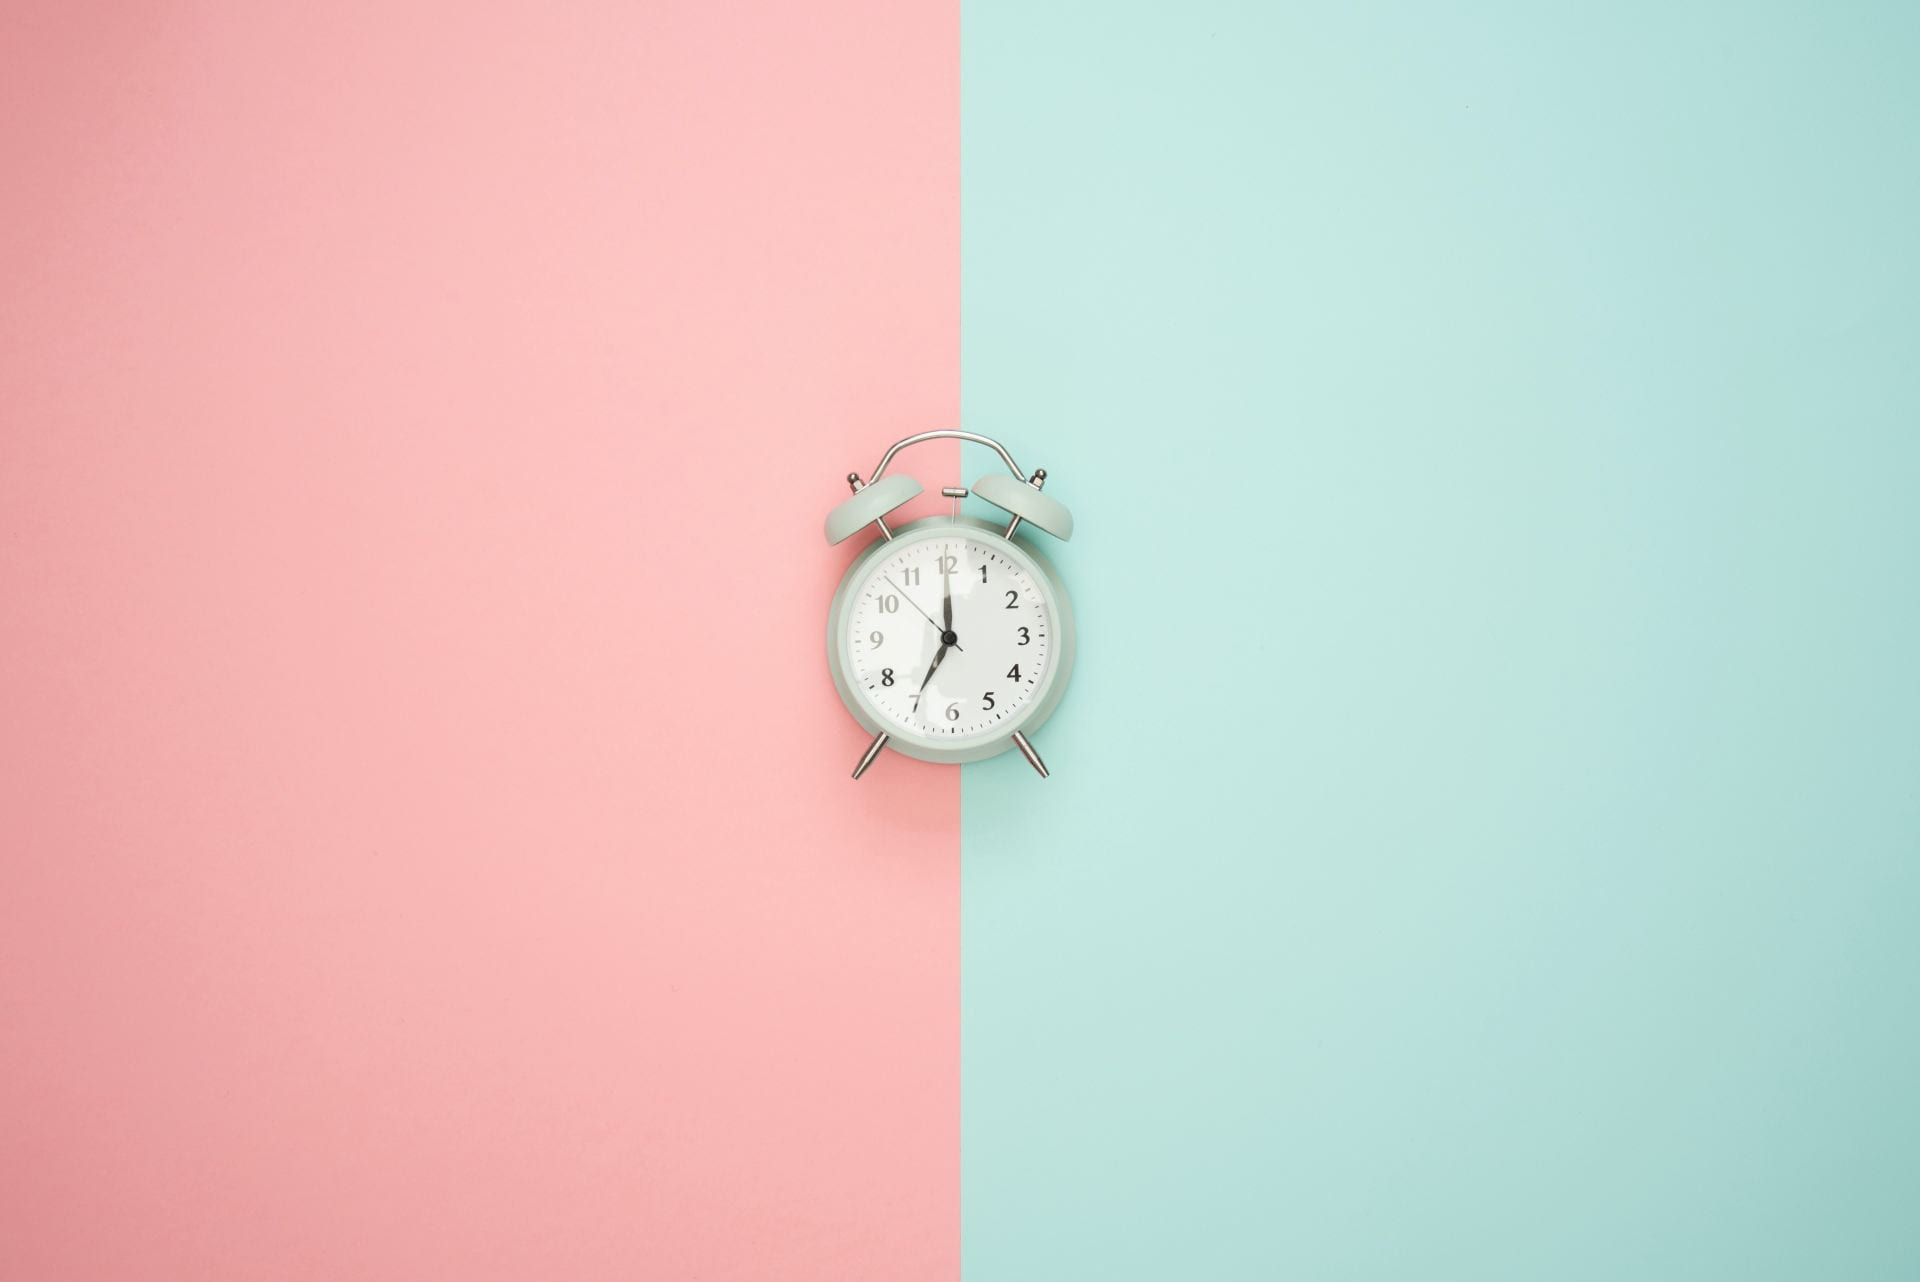 An alarm clock in the middle of a background that is split exactly into two colours. The left is pink and the right is blue.